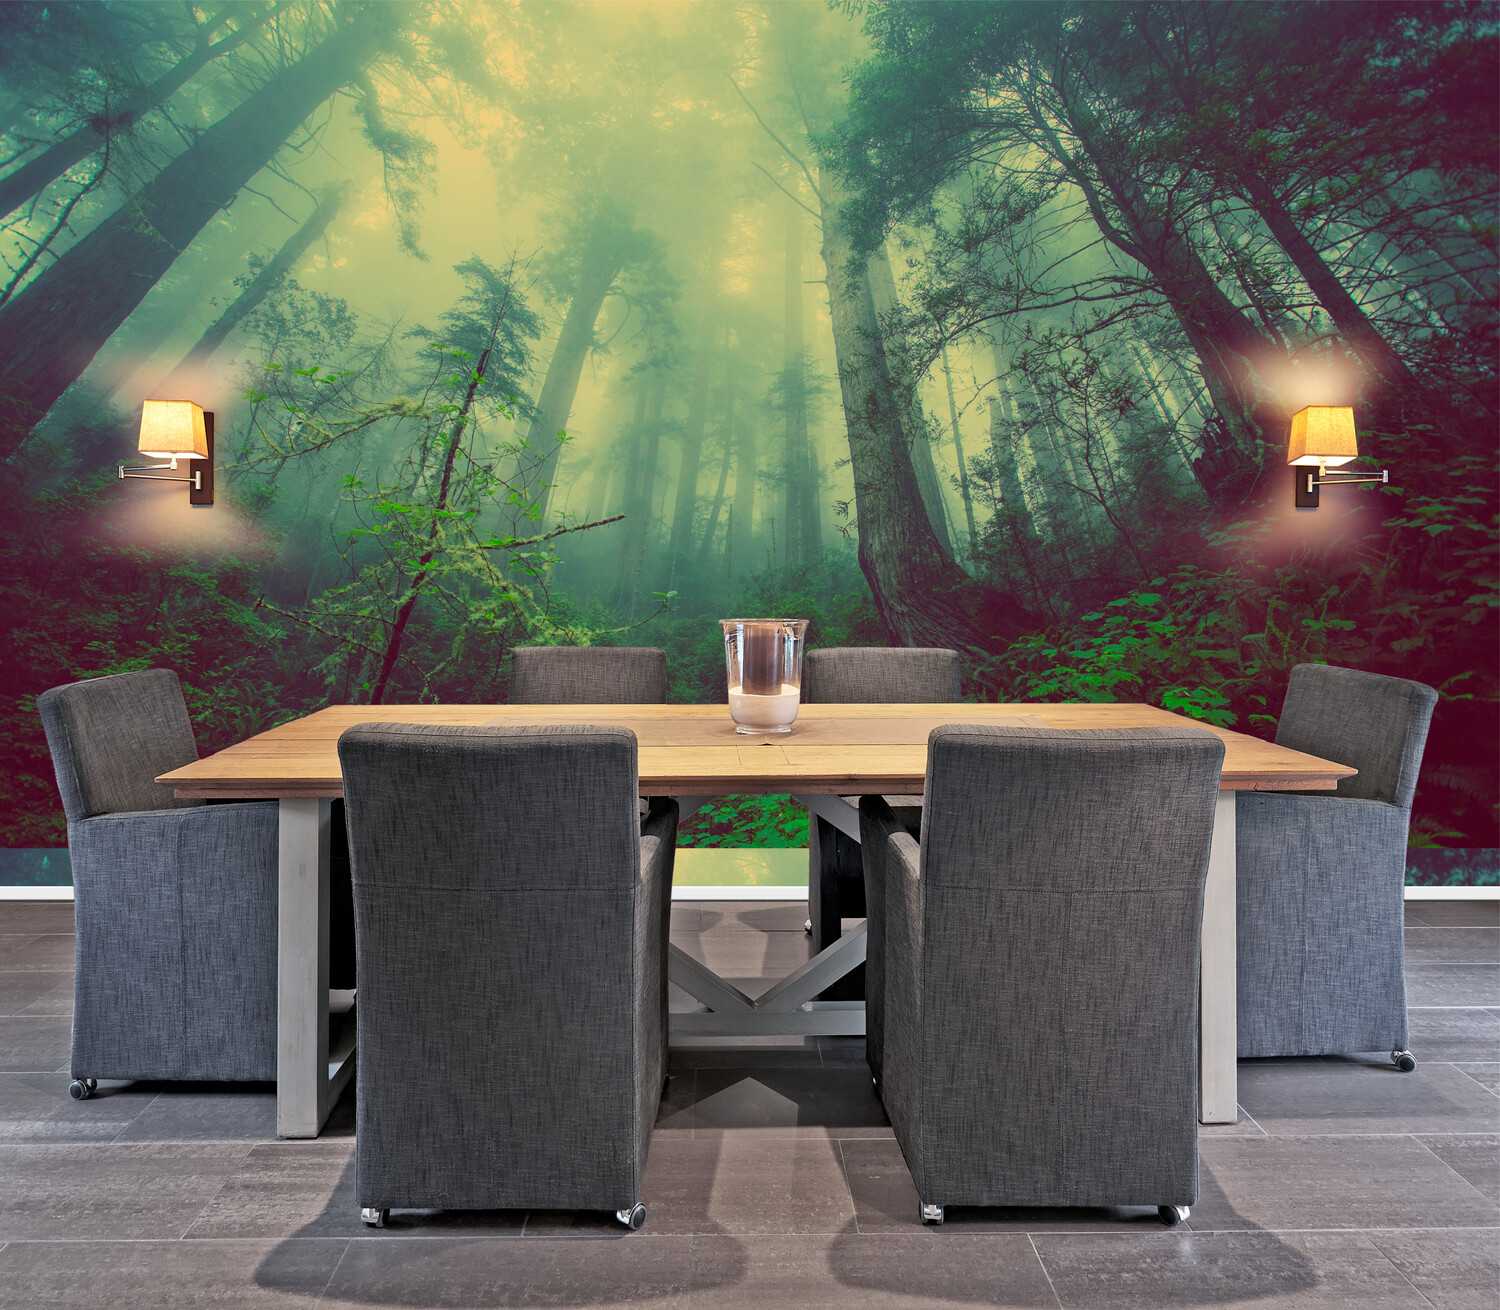 MISTY COASTAL FOREST | Vinyl Wall Mural for Any Room | Removable Vinyl Wallpaper